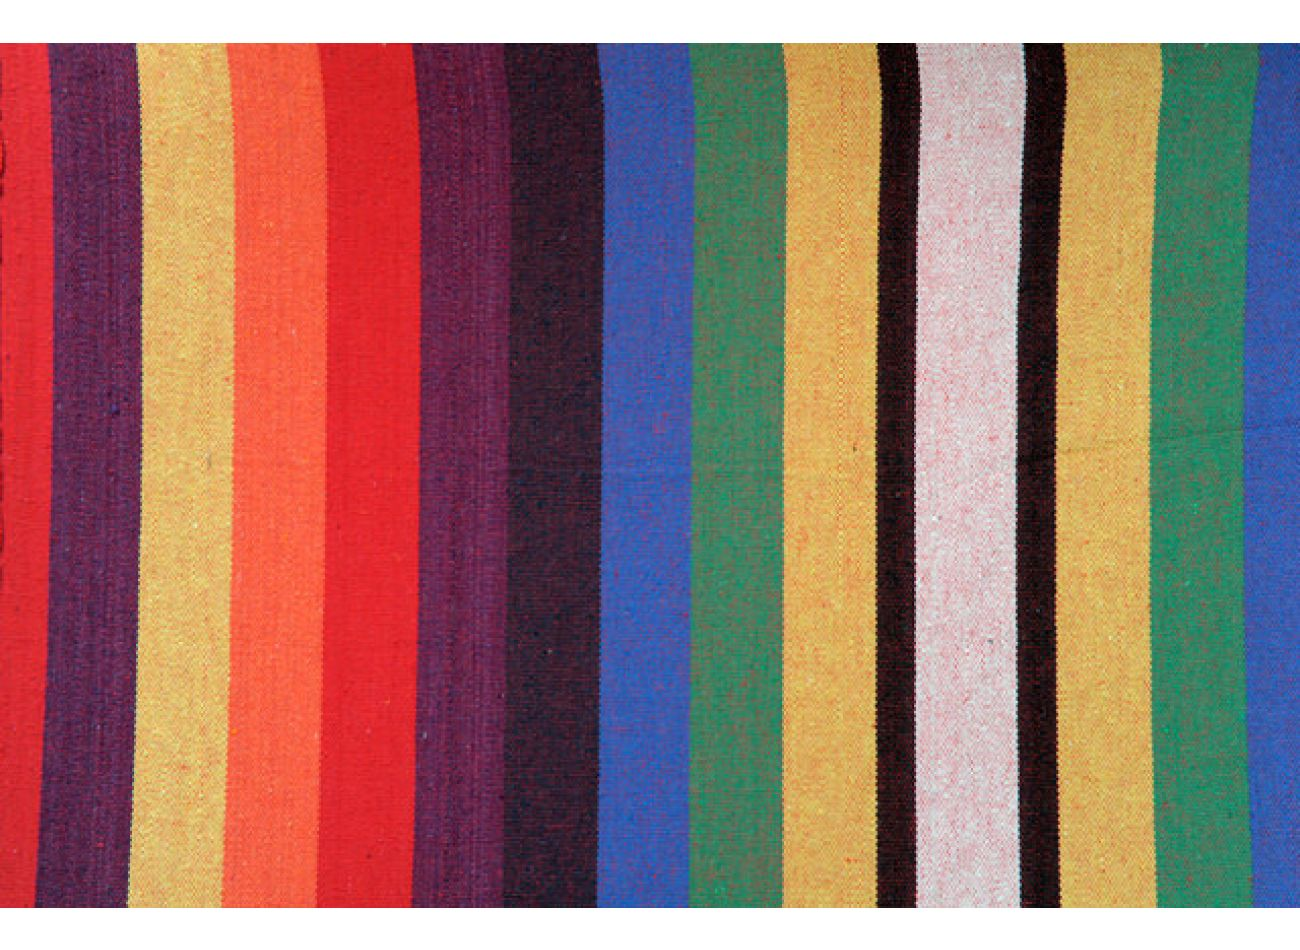 Kinderhangmat Chico Rainbow